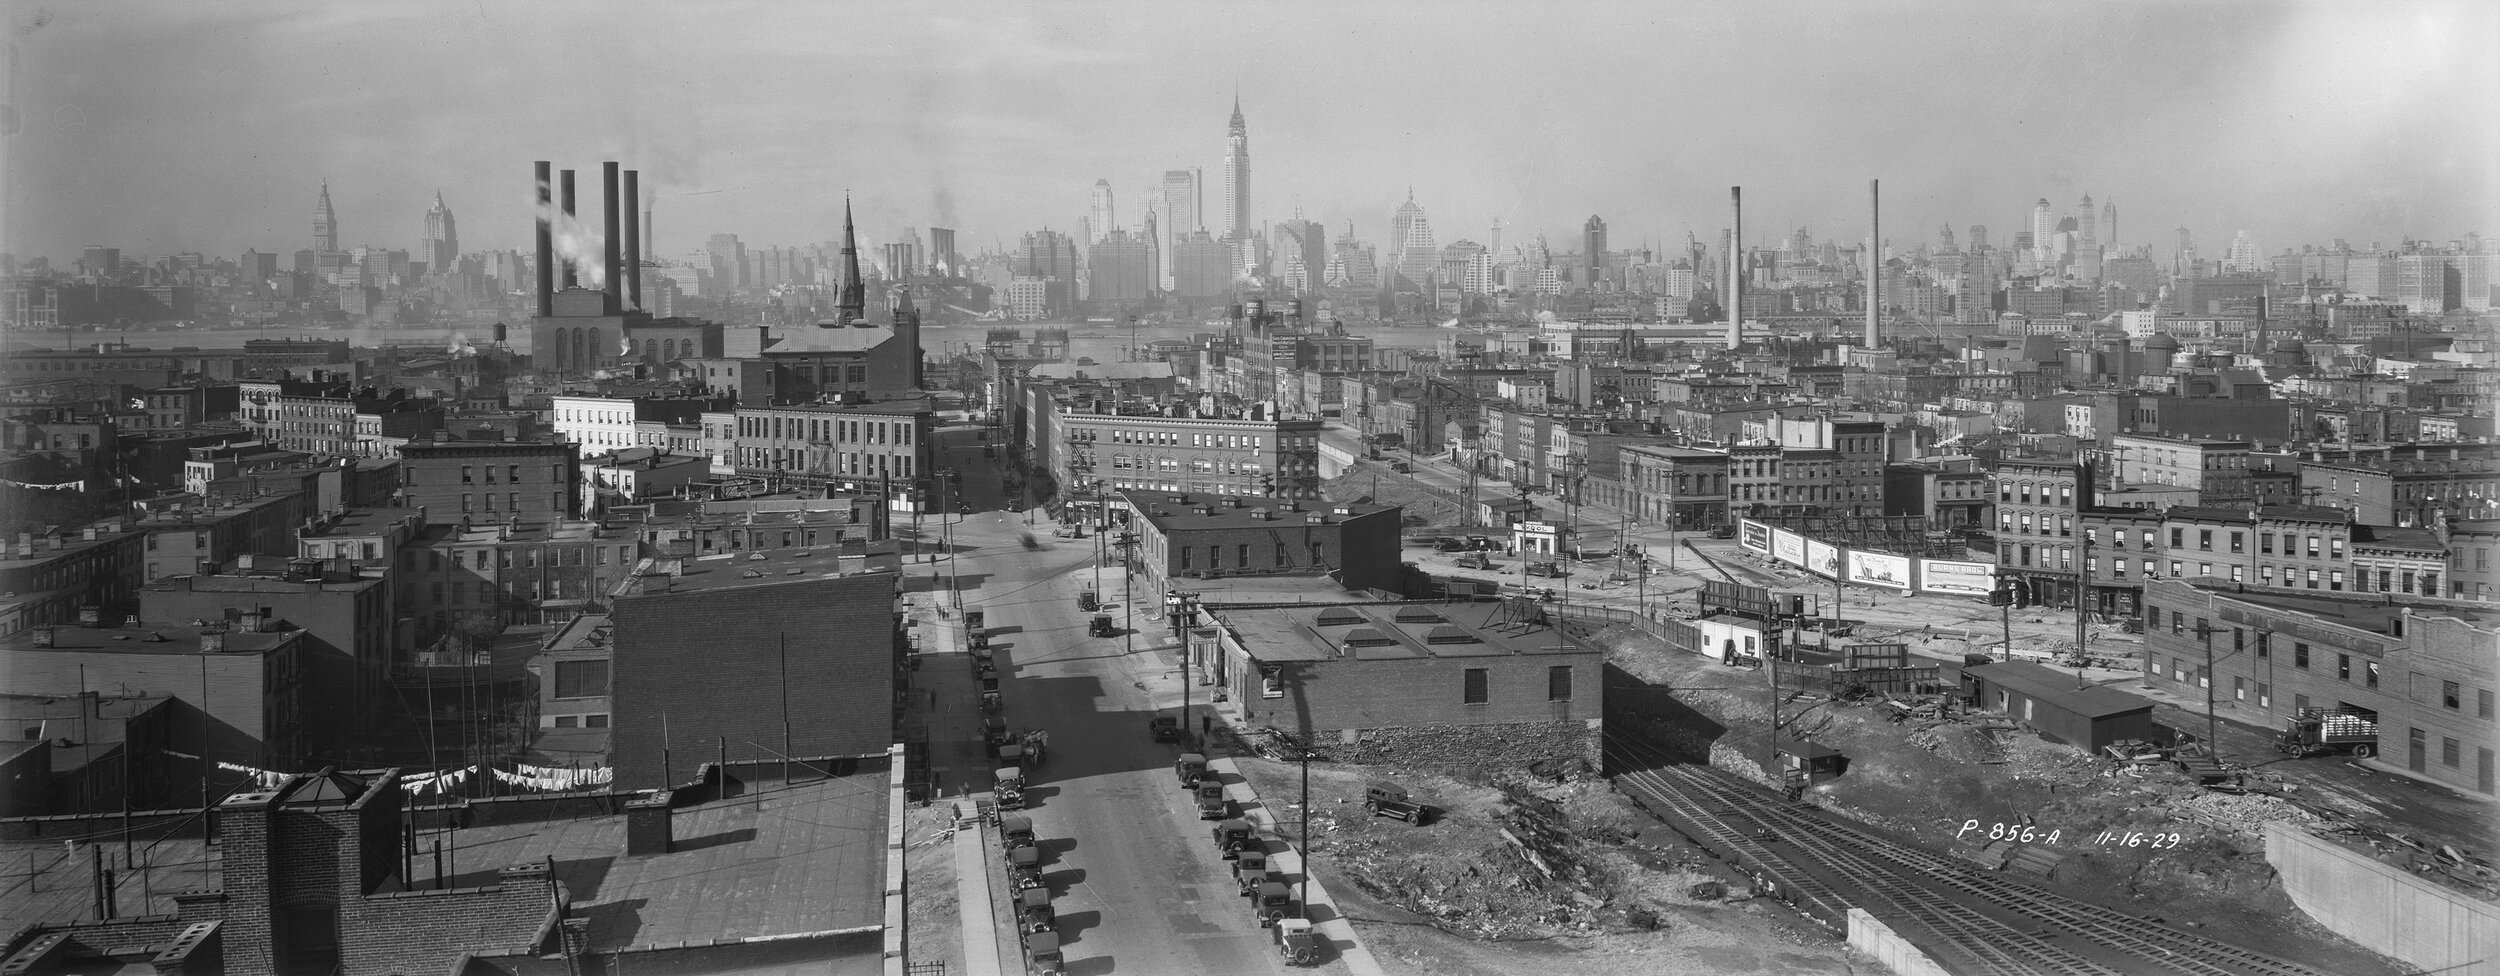 P-856-a:  Elevated view of Long Island City, November 16, 1929. The Chrysler Building is at the center of the Manhattan skyline. Borough President Queens Collection, NYC Municipal Archives.